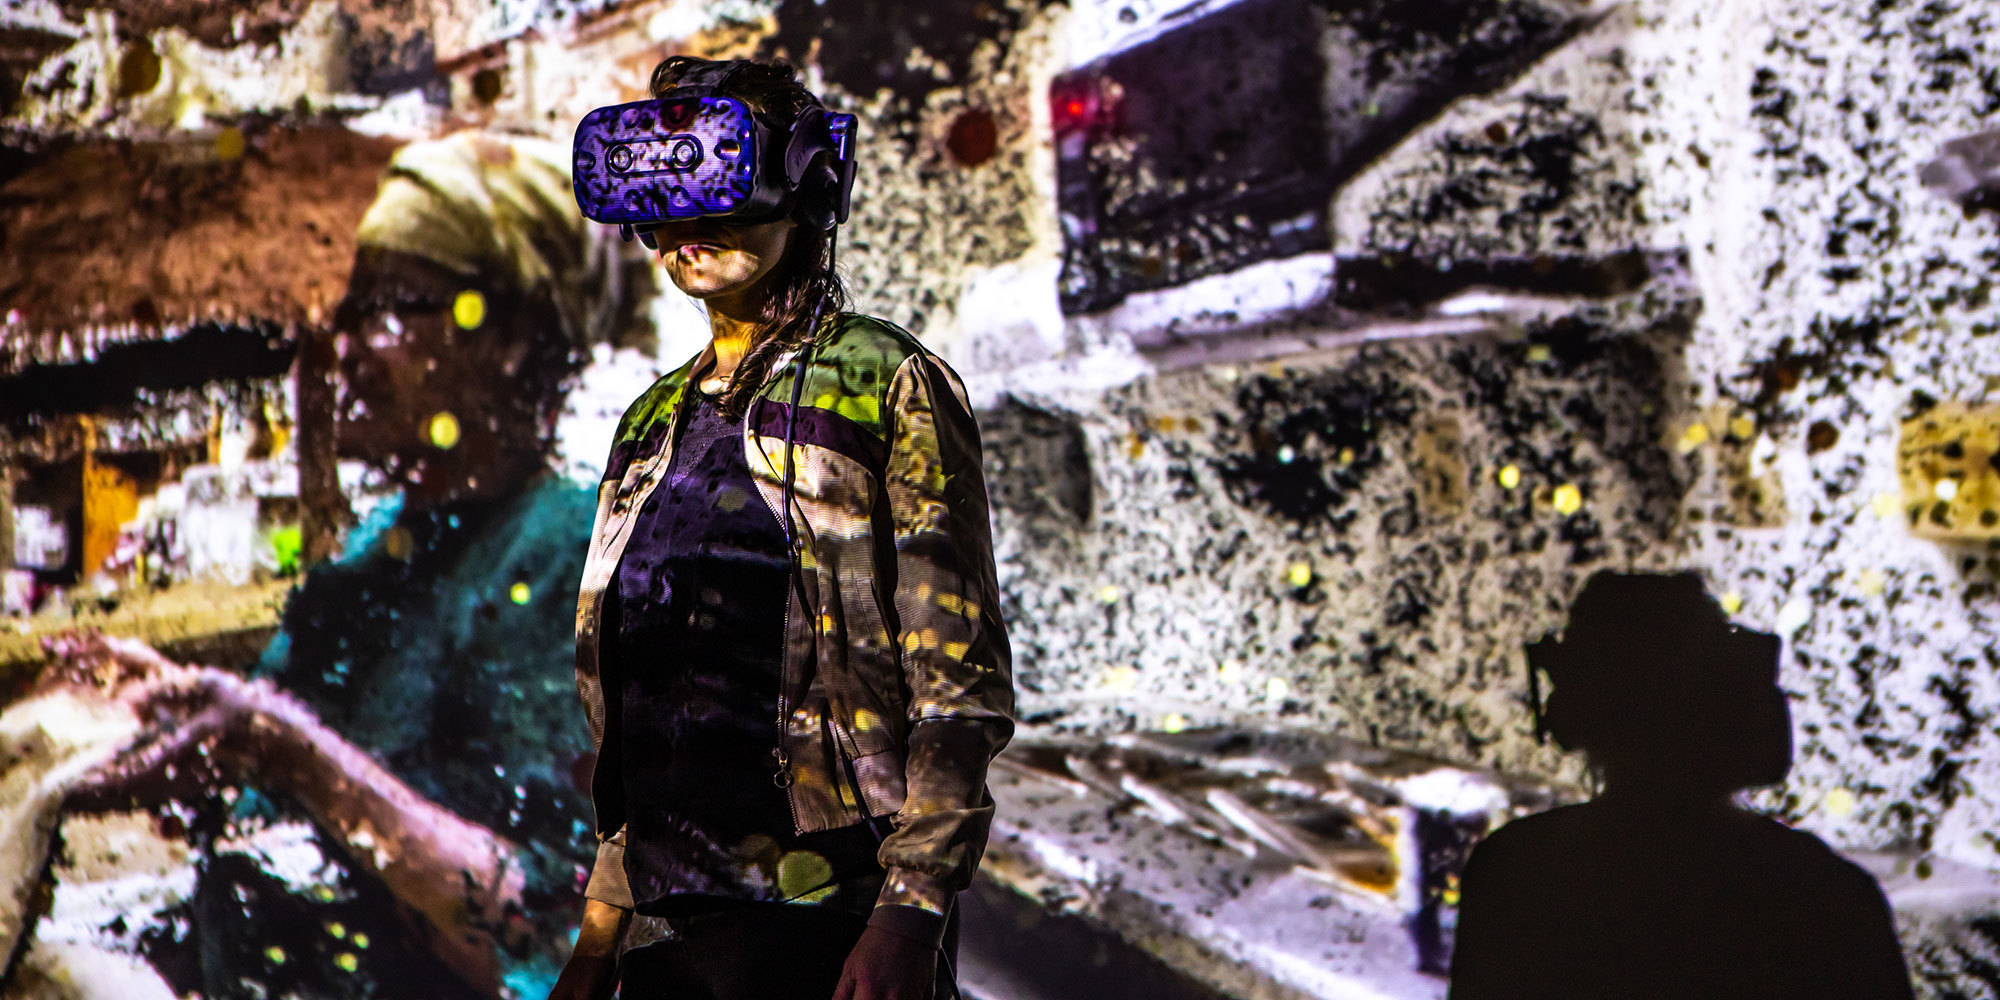 VR installation person googles projection